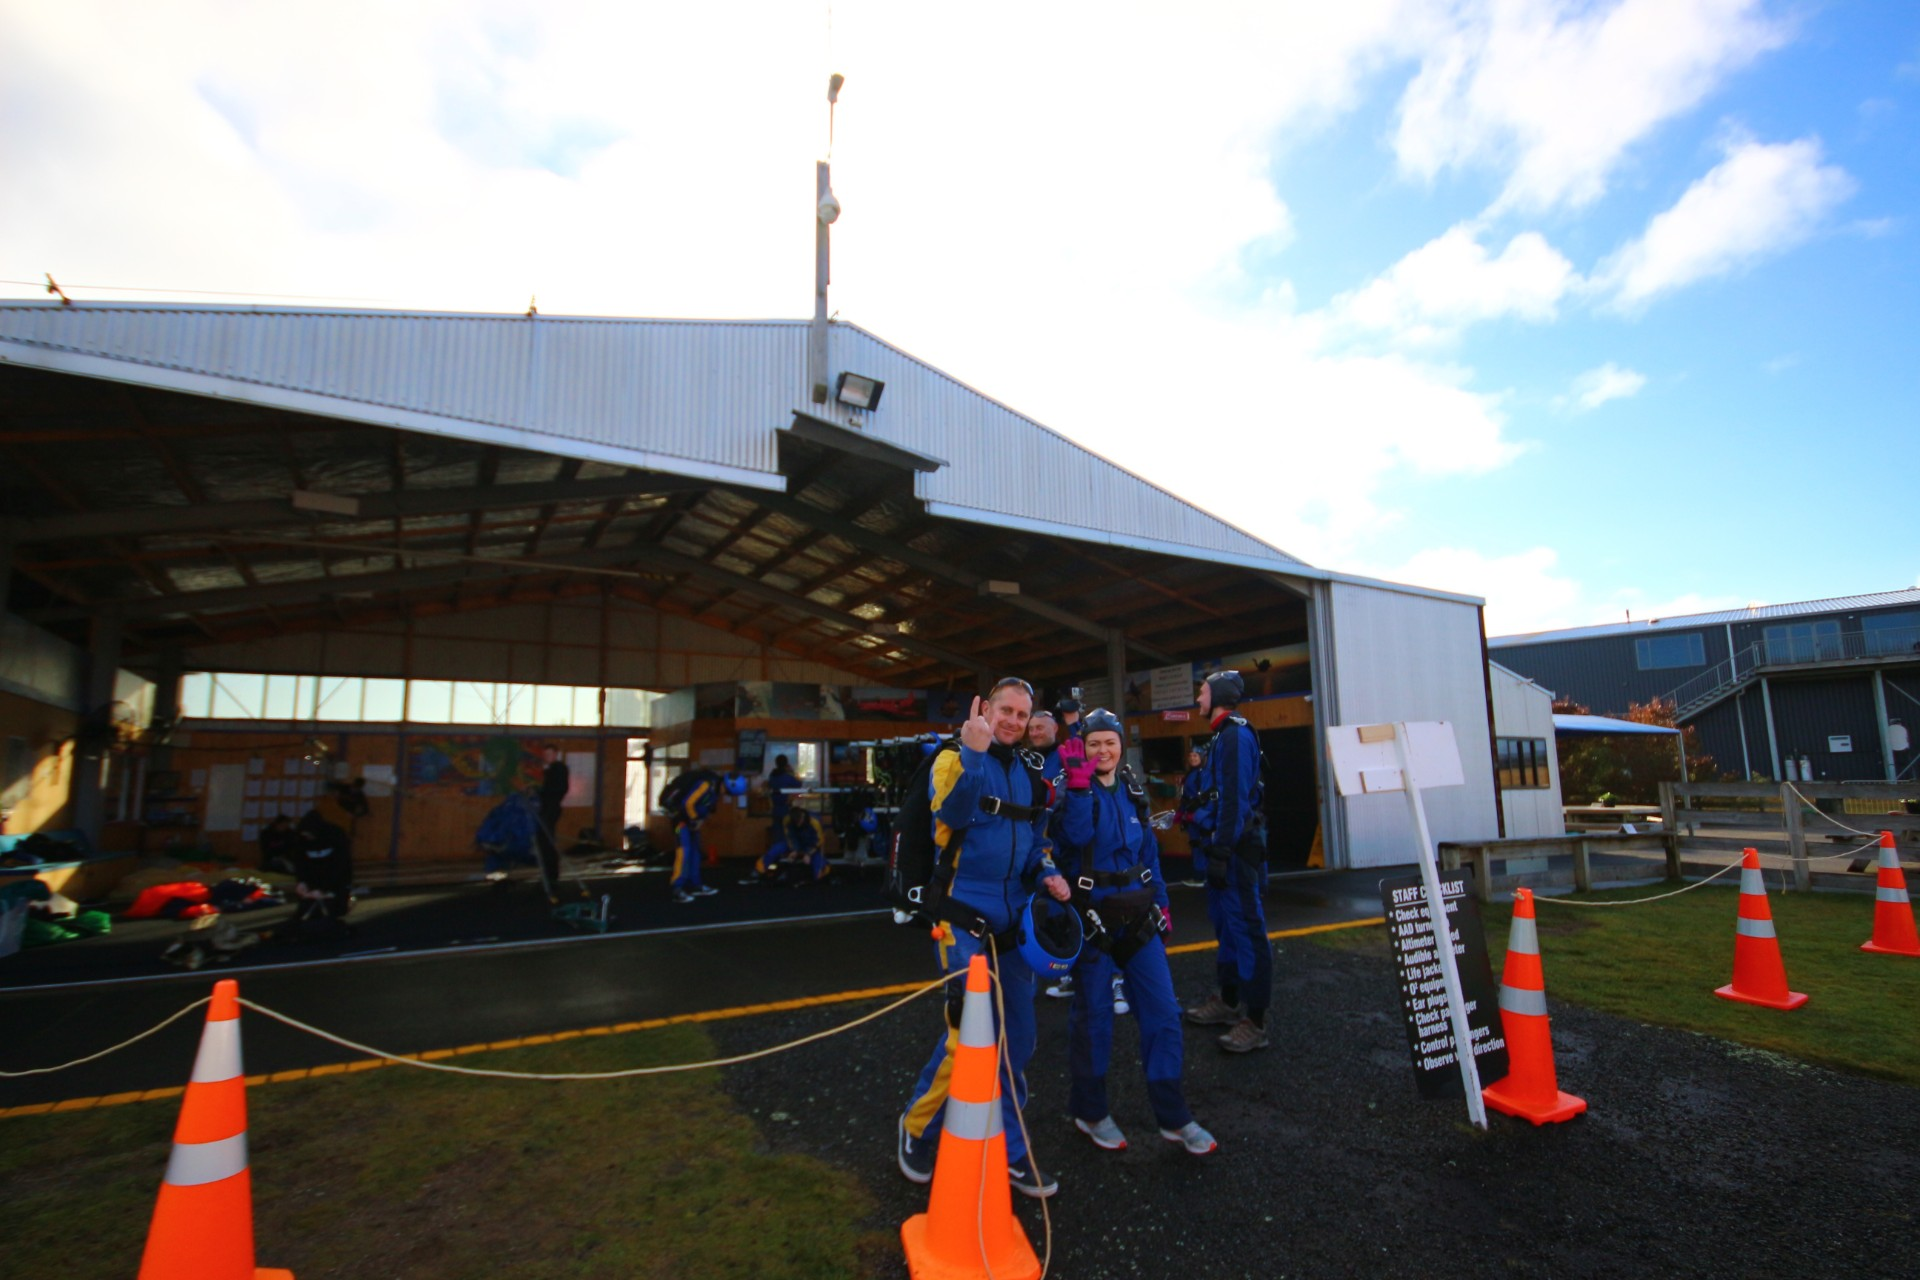 Skydive gear orange cones building farm Skydive Taupo The Best Skydiving in New Zealand